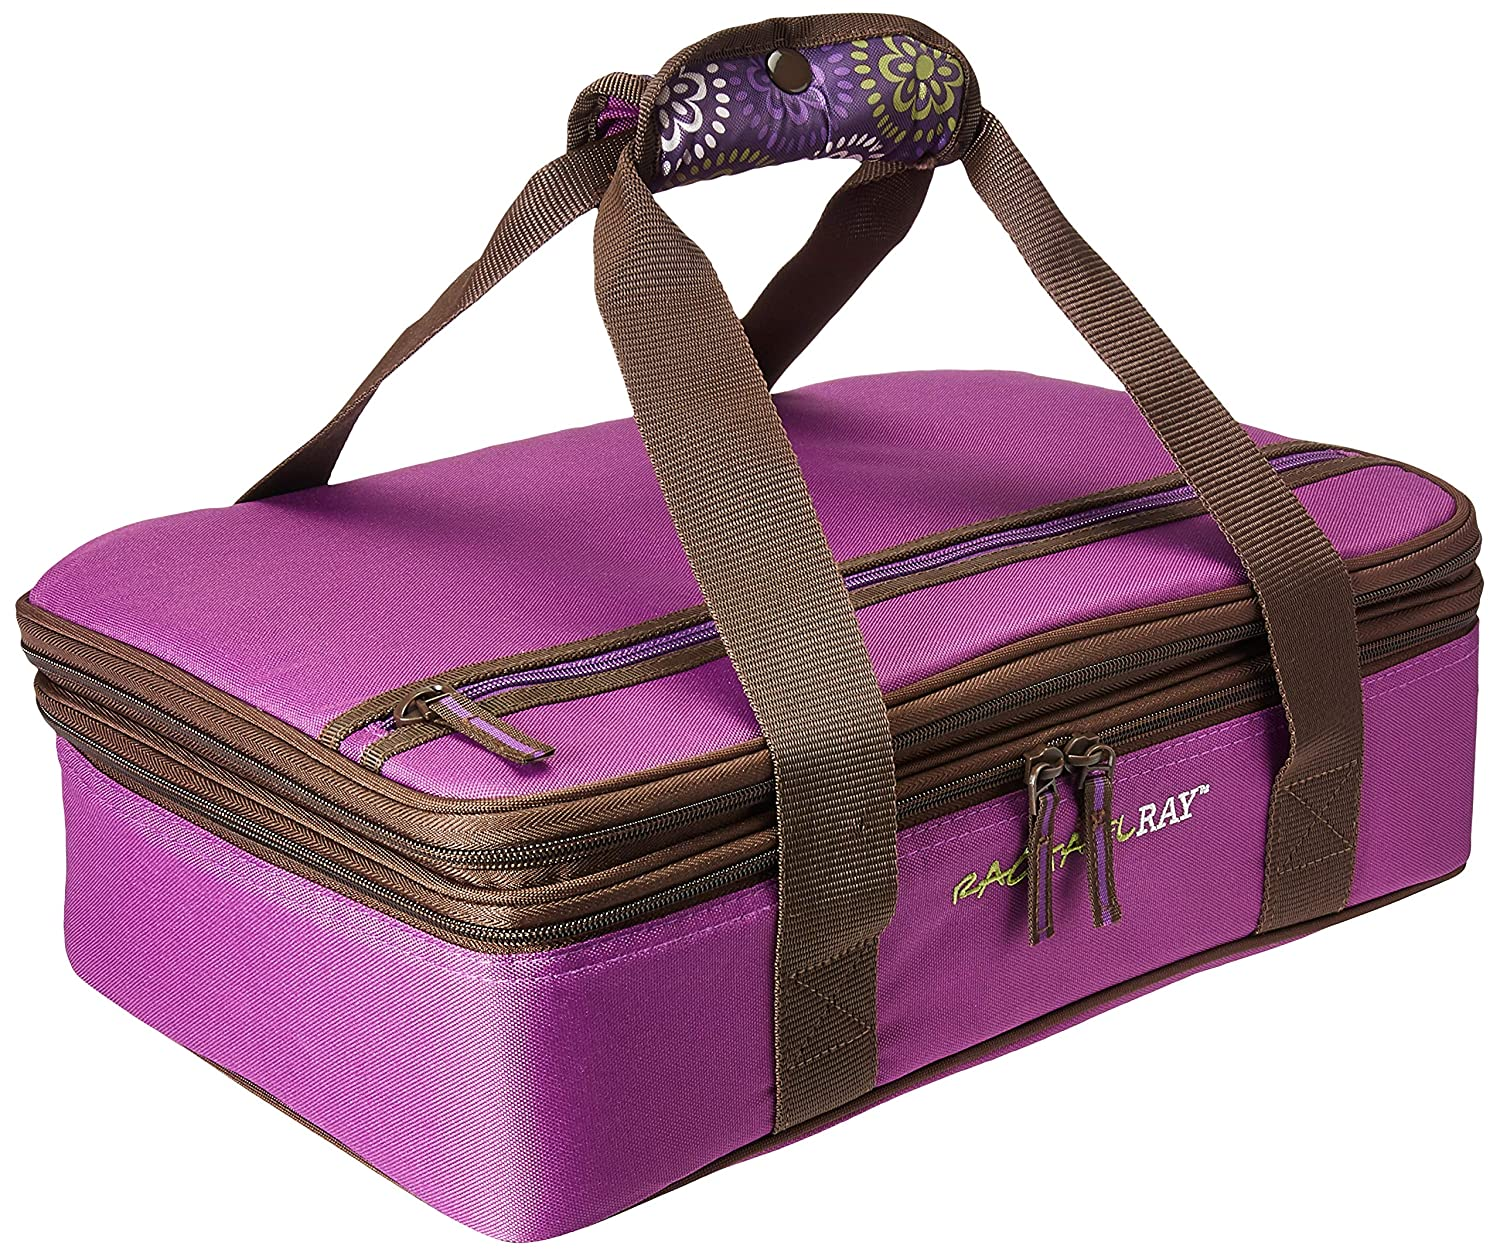 """Rachael Ray Expandable Lasagna Lugger, Double Casserole Carrier for Potluck Parties, Picnics, Tailgates - Fits two 9""""x13"""" Casserole Dishes, Purple Floral Medallion"""